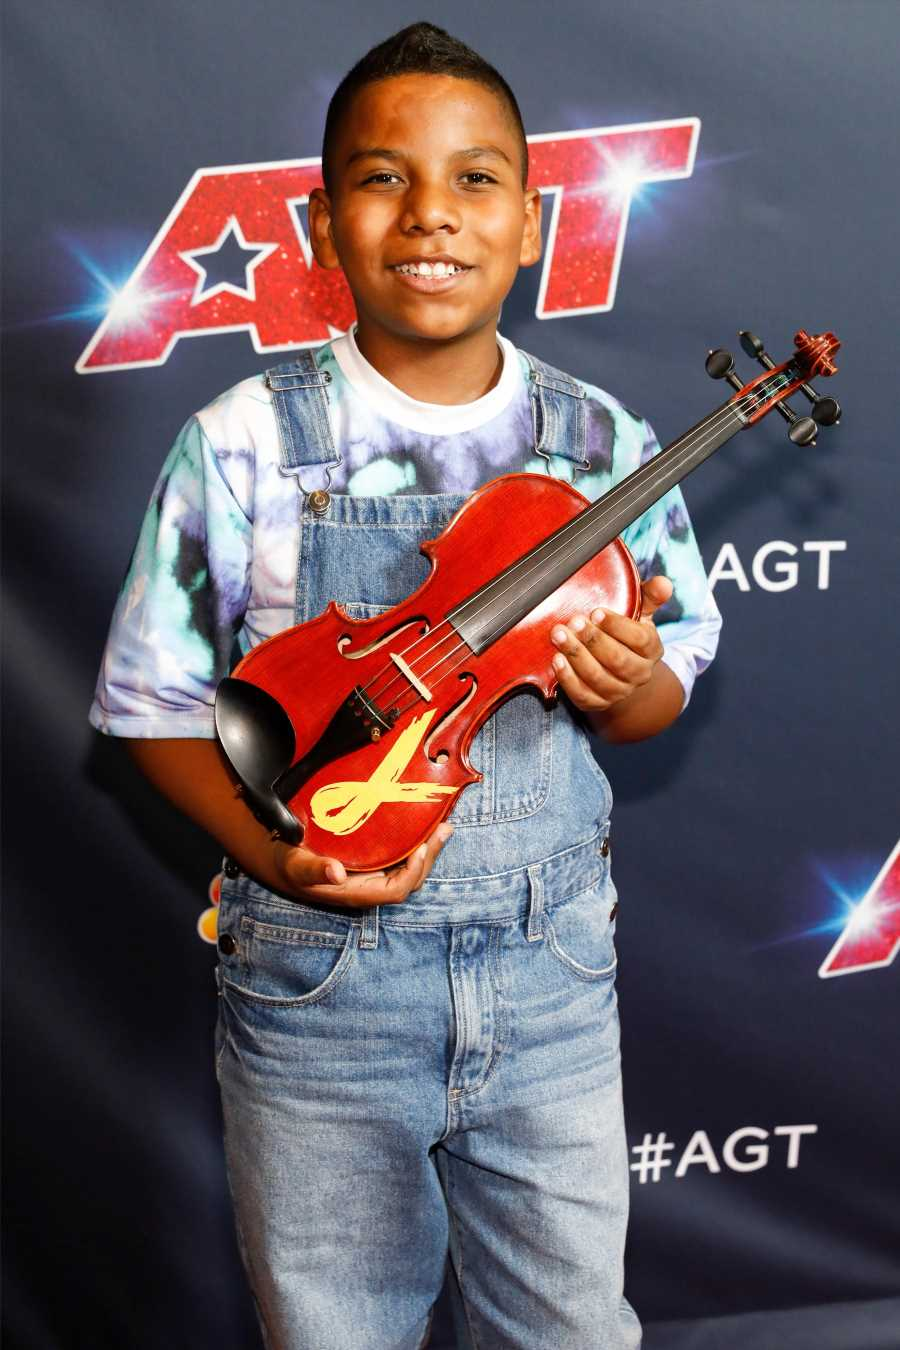 11-Year-Old AGT Violinist Who Beat Cancer Hopes to Be an 'Inspiration to Many Children'